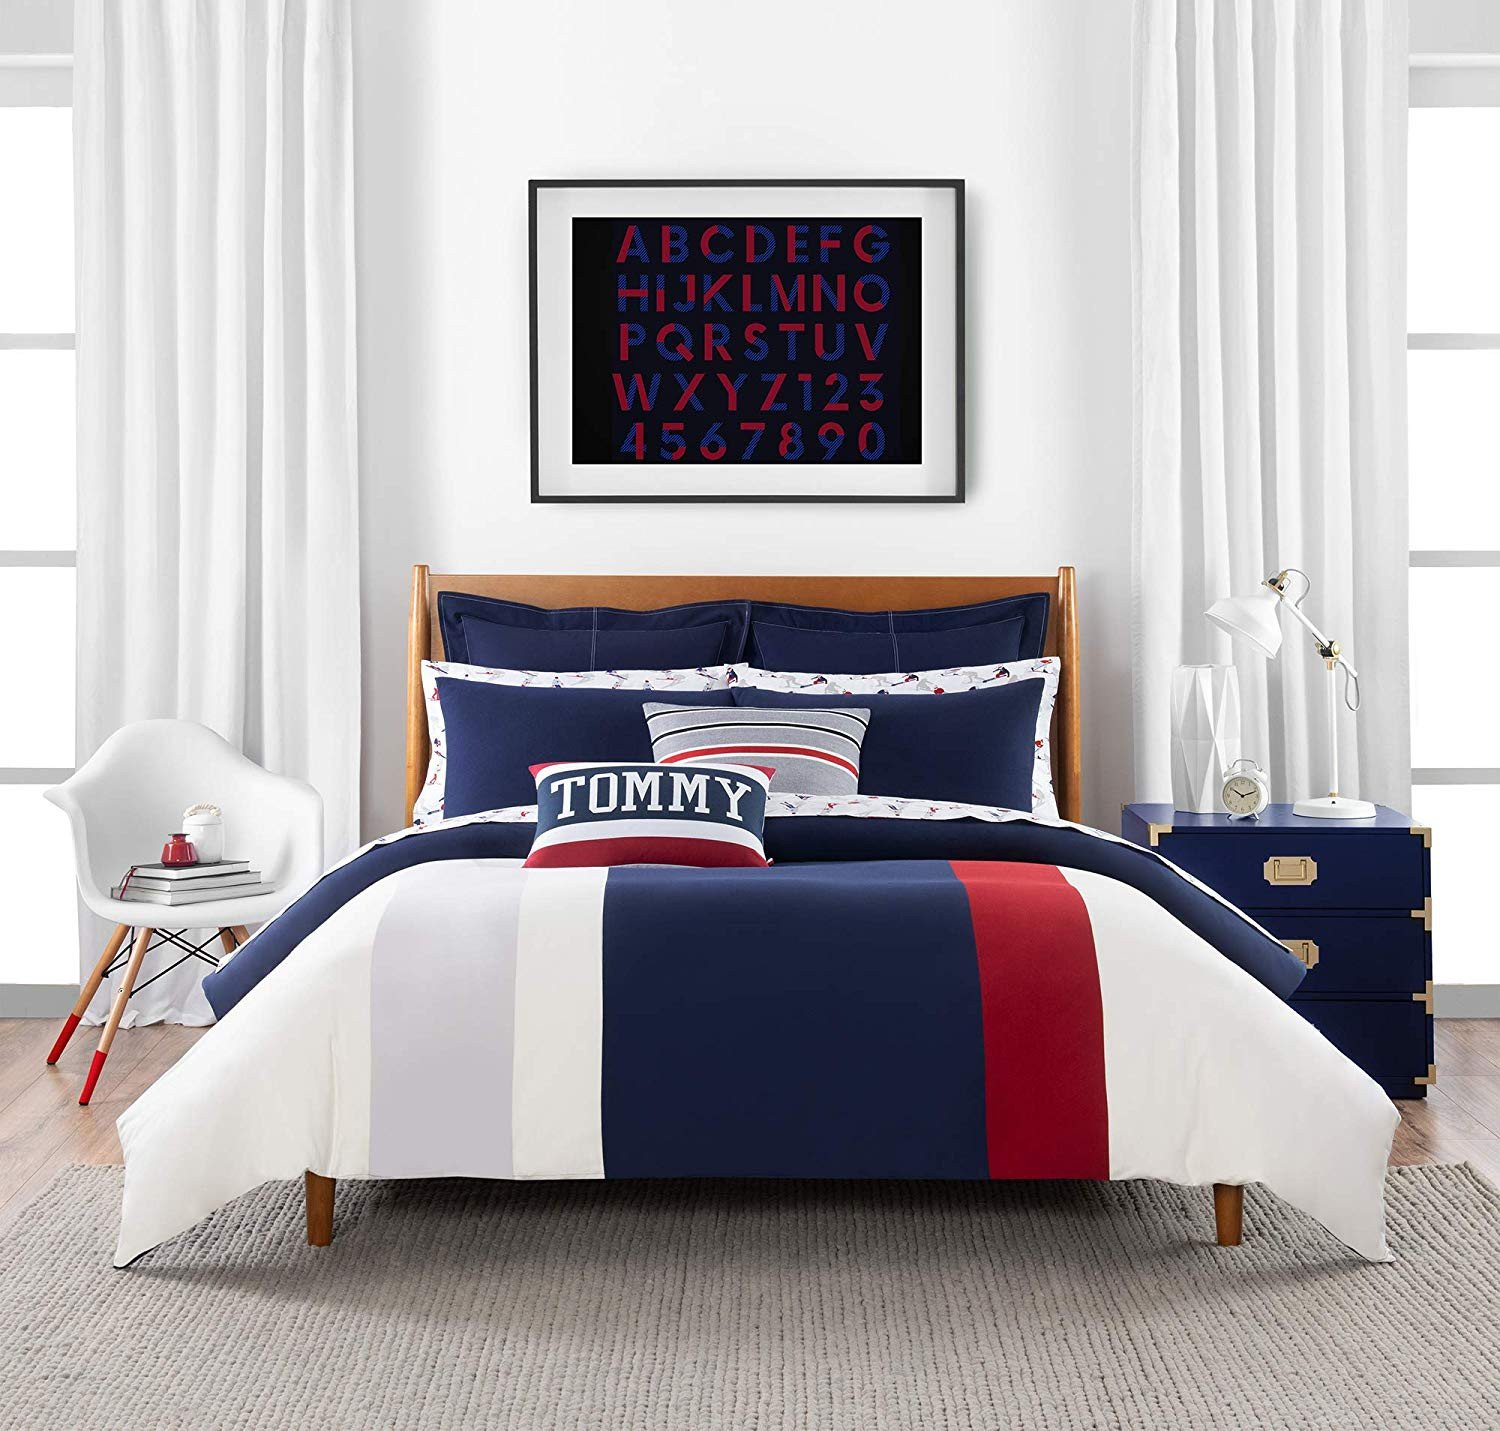 Purple and Silver Bedroom Luxury Amazon tommy Hilfiger Clash Of 85 Stripe Bedding